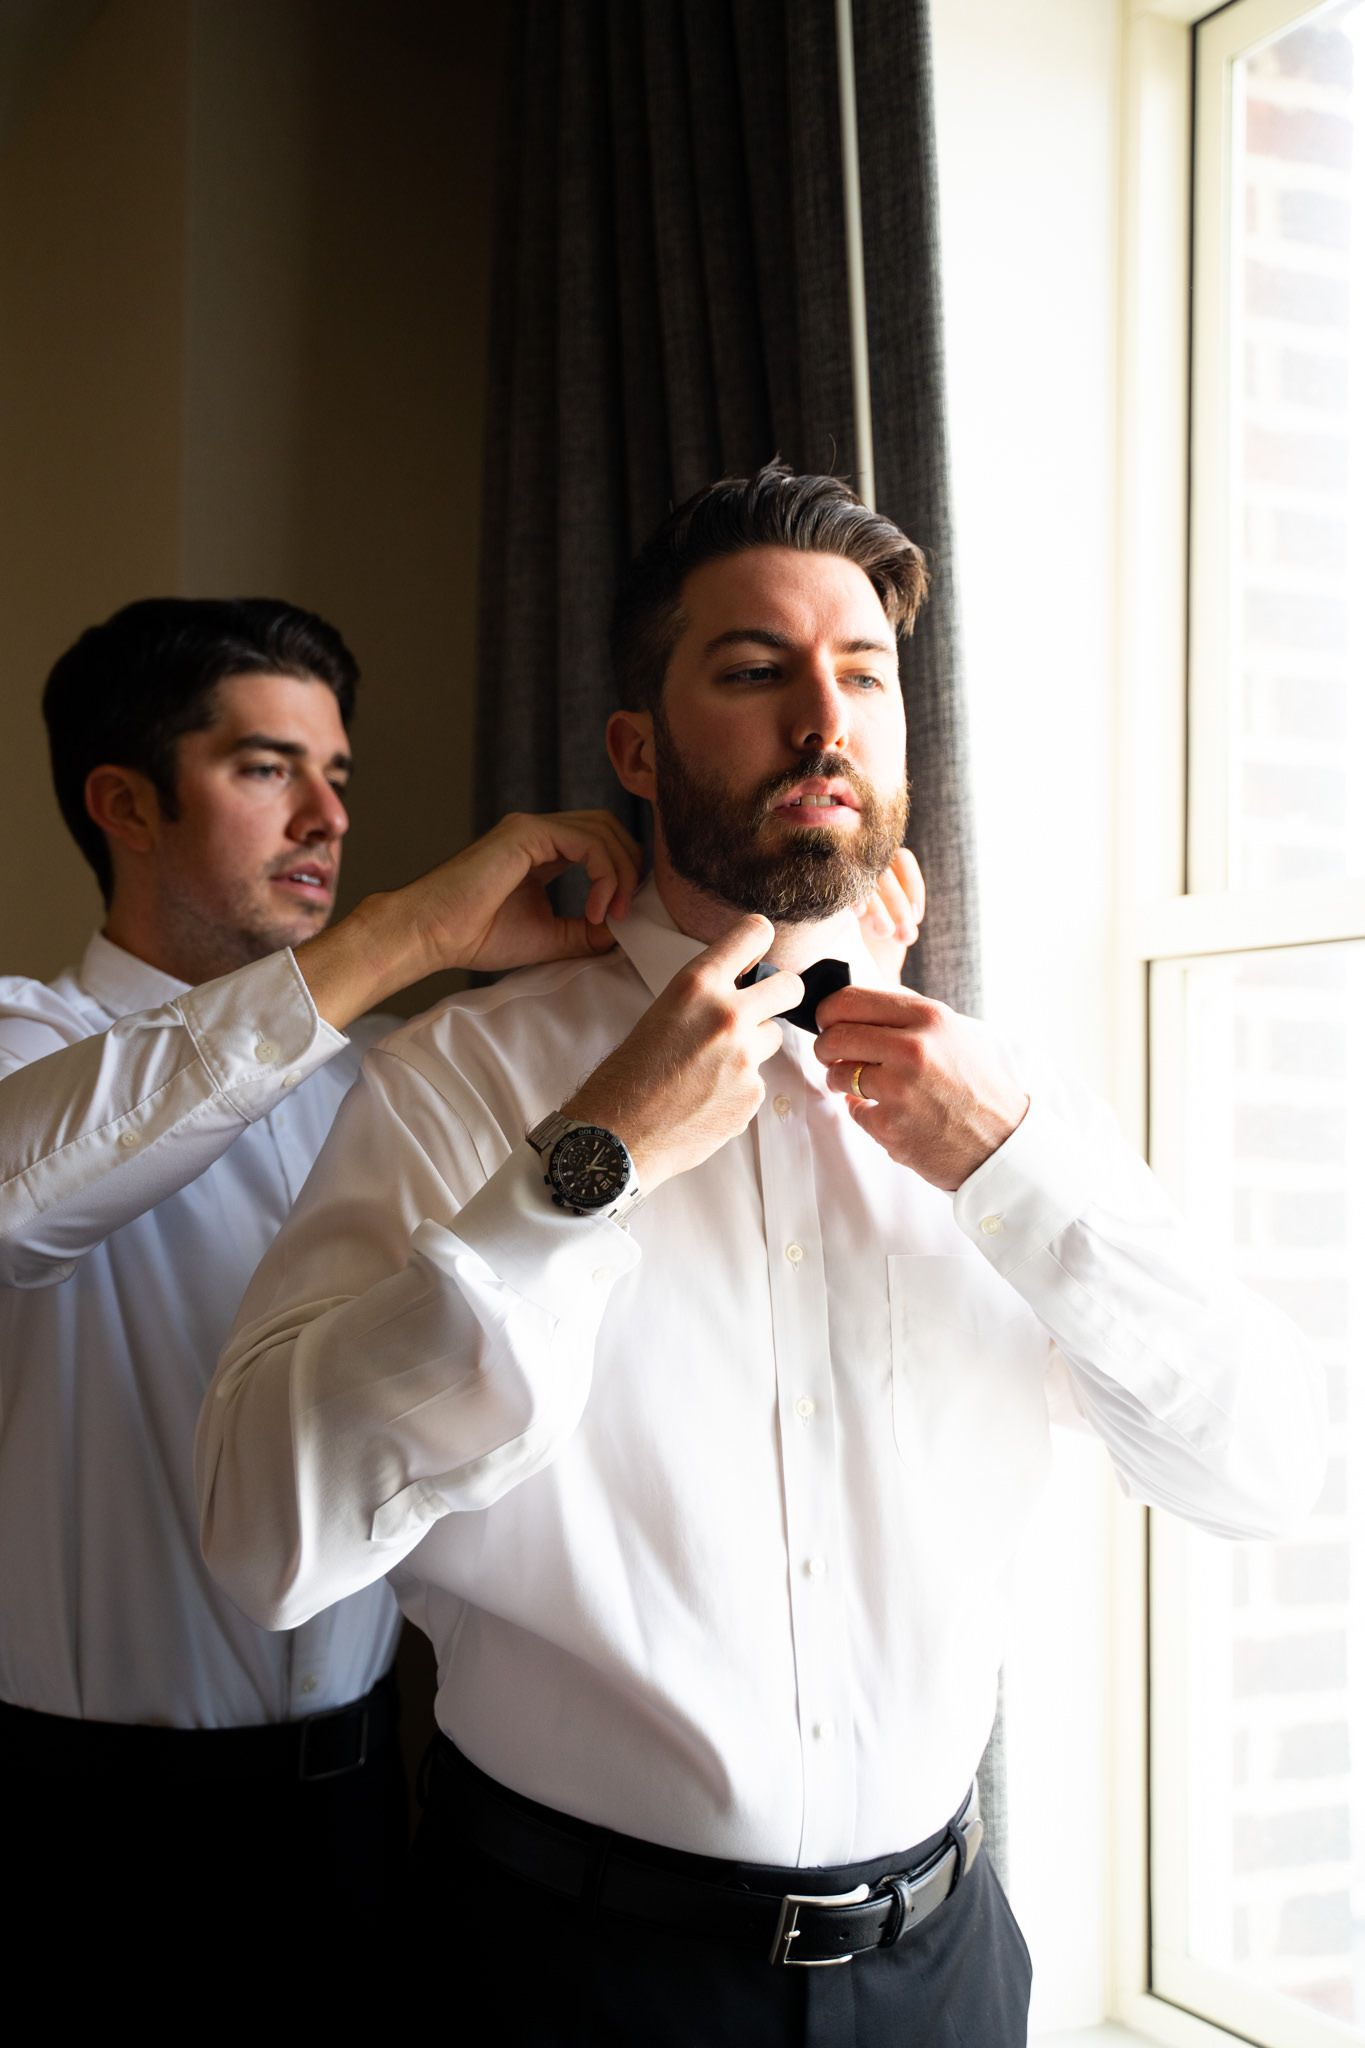 brunette groom fixing bowtie near a window for Chicago wedding